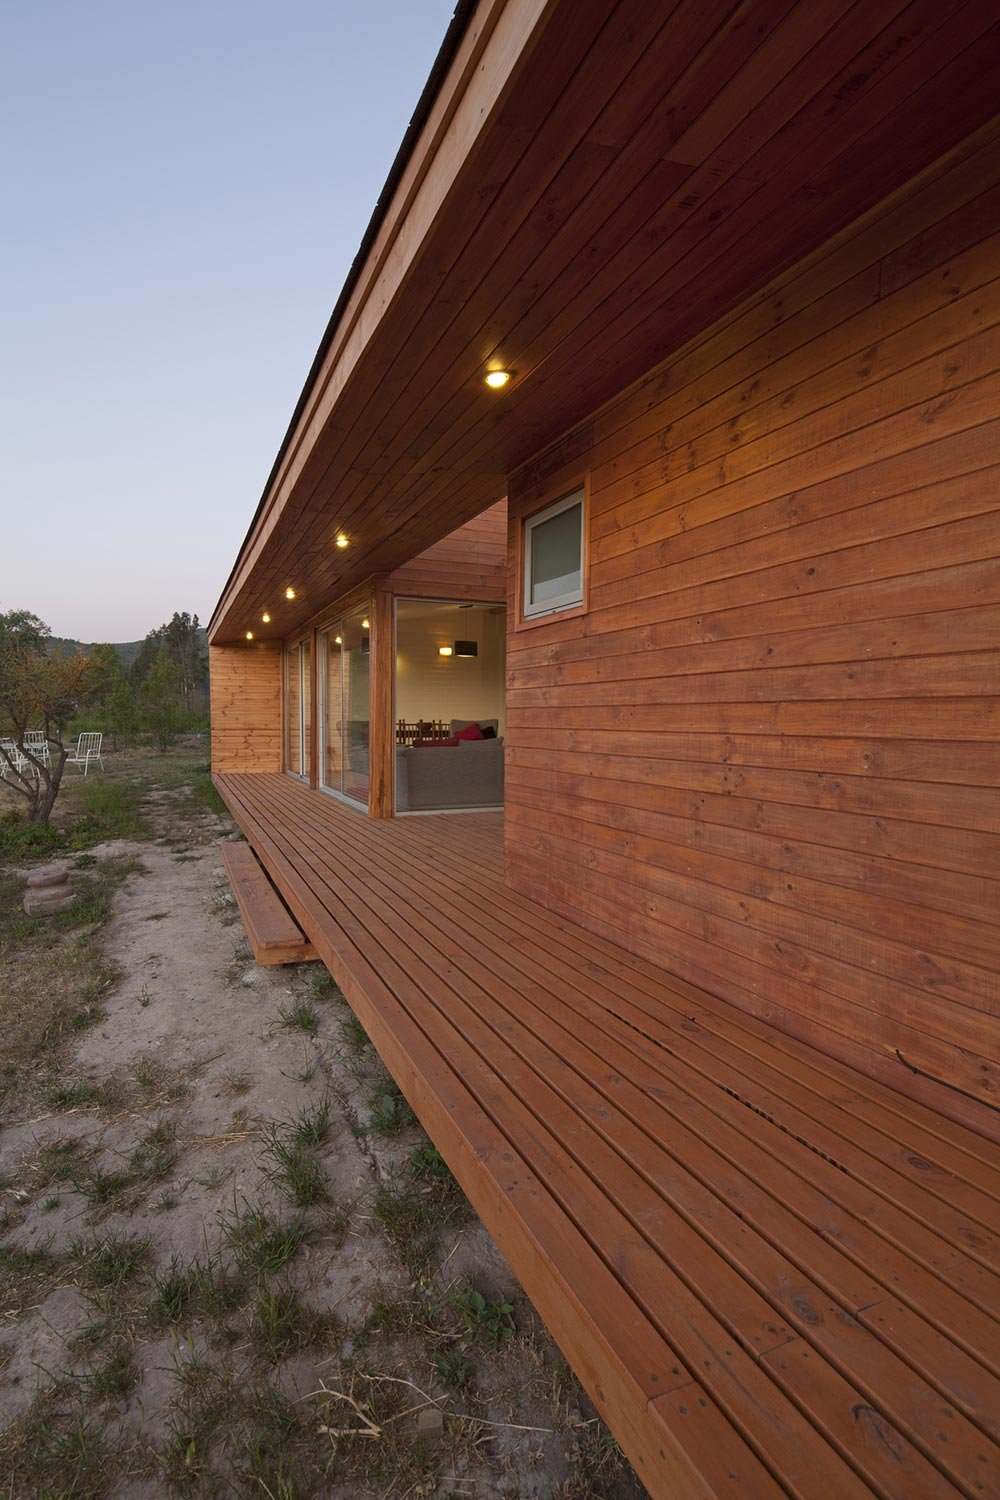 Wooden Deck, Lighting, Home in Chile with Japanese Influences